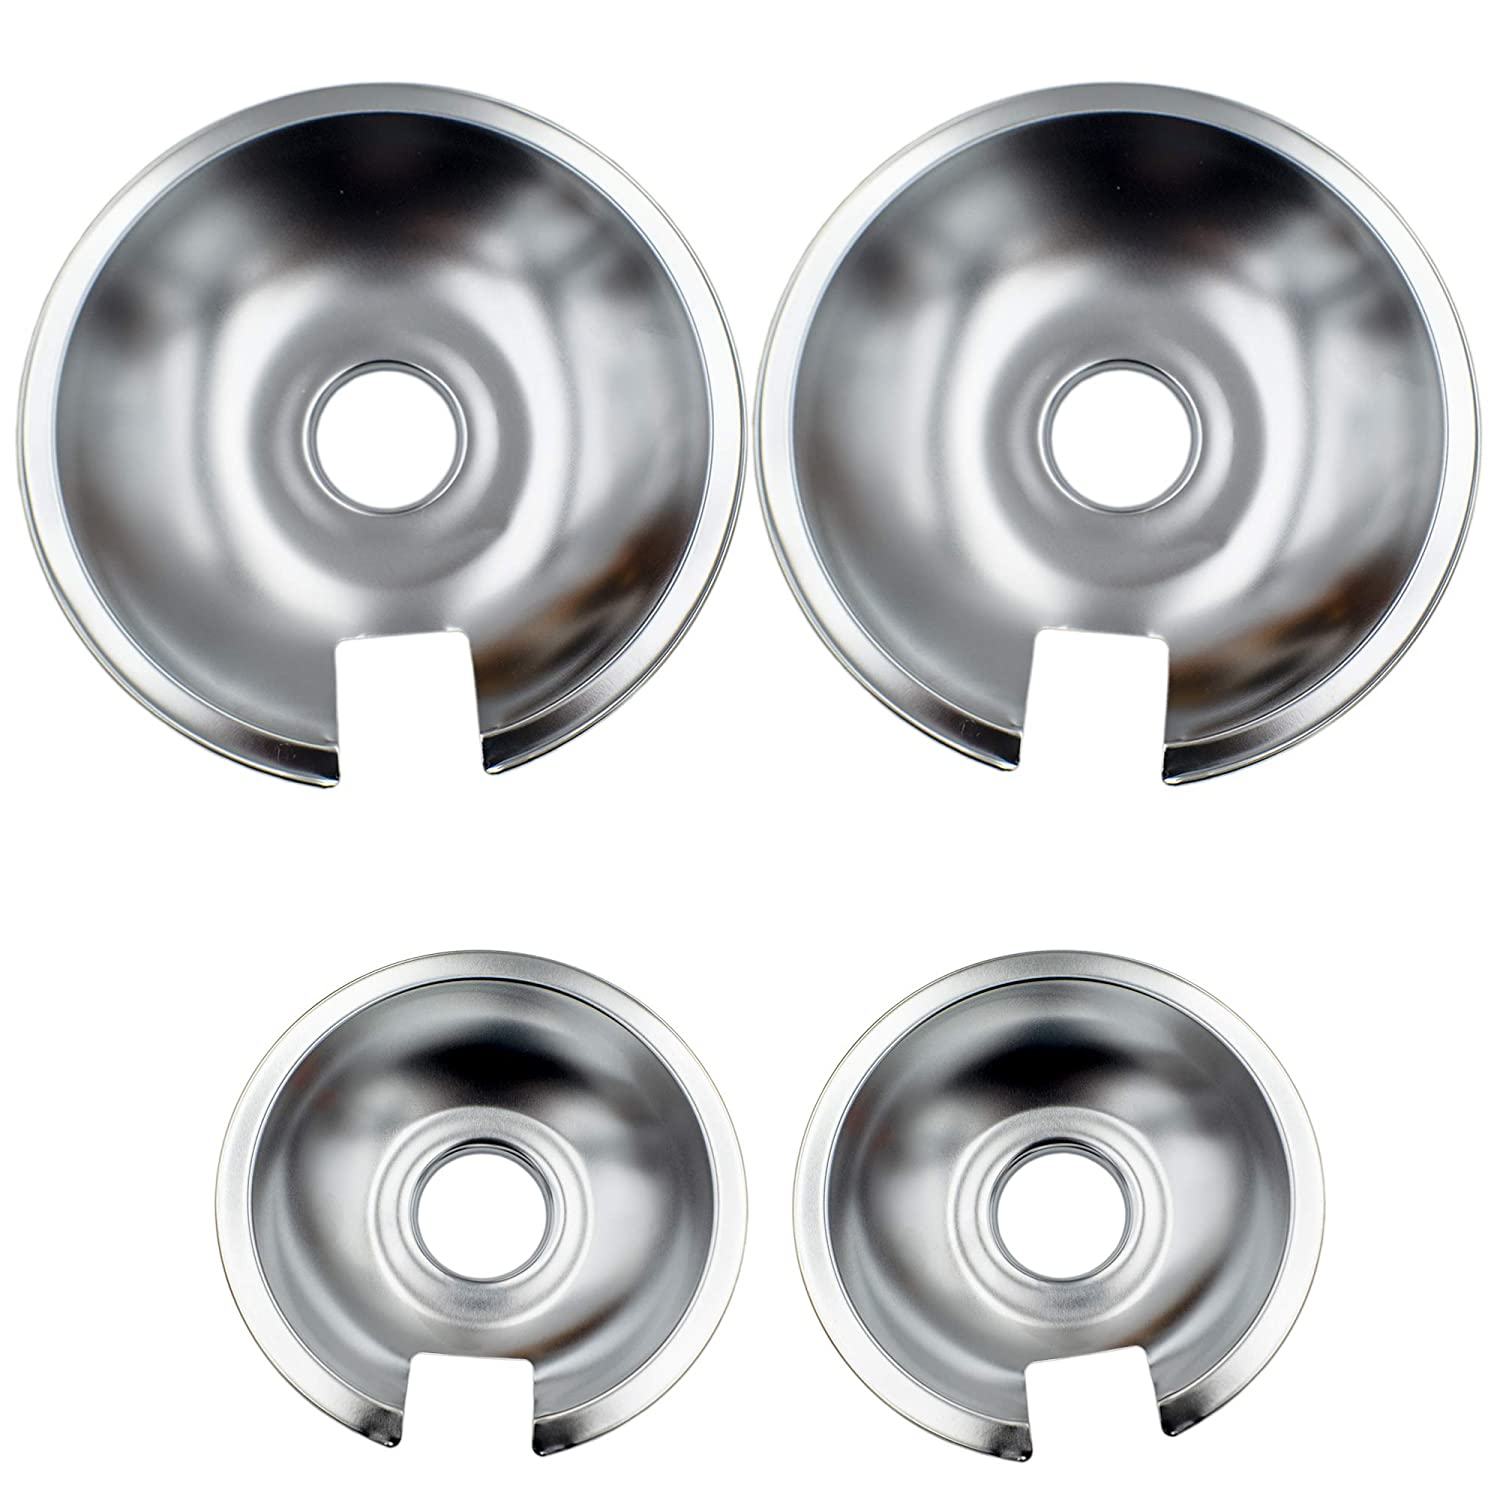 Supplying Demand 715878 715877 Chrome Drip Pan 4 Piece Set Compatible with Jenn Air (2) 6 Inch & (2) 8 Inch